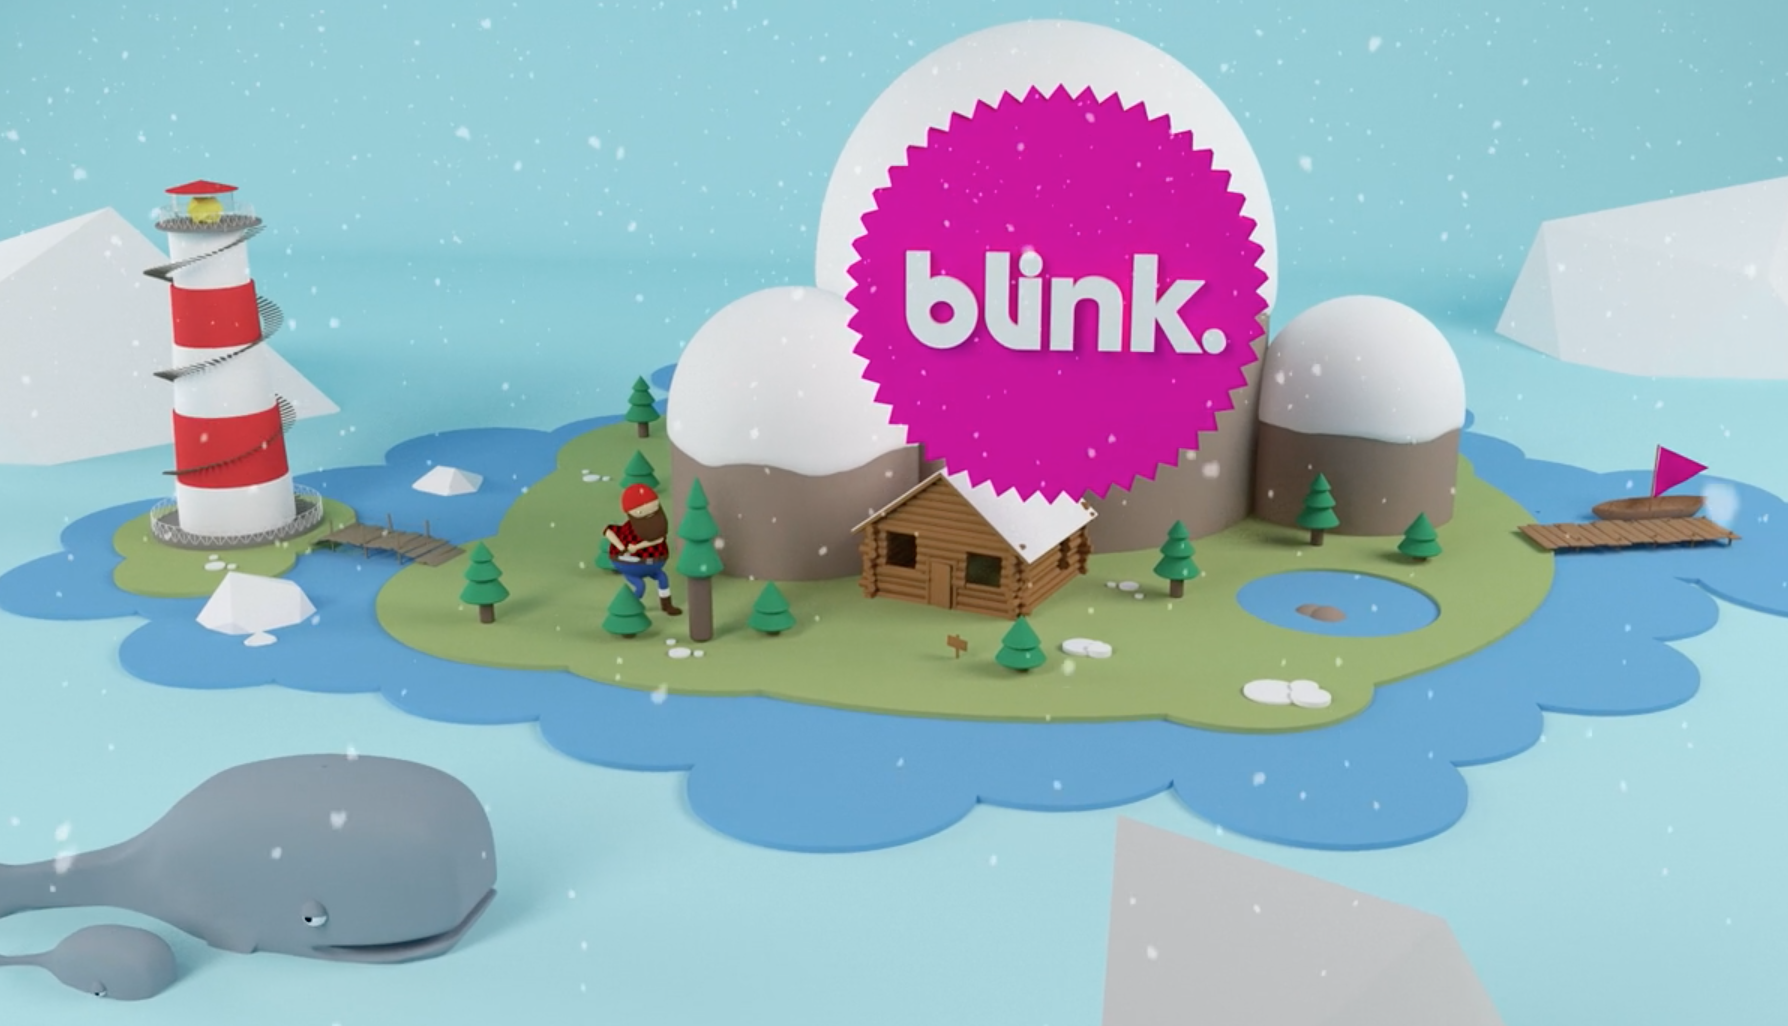 Happy holidays from Blink